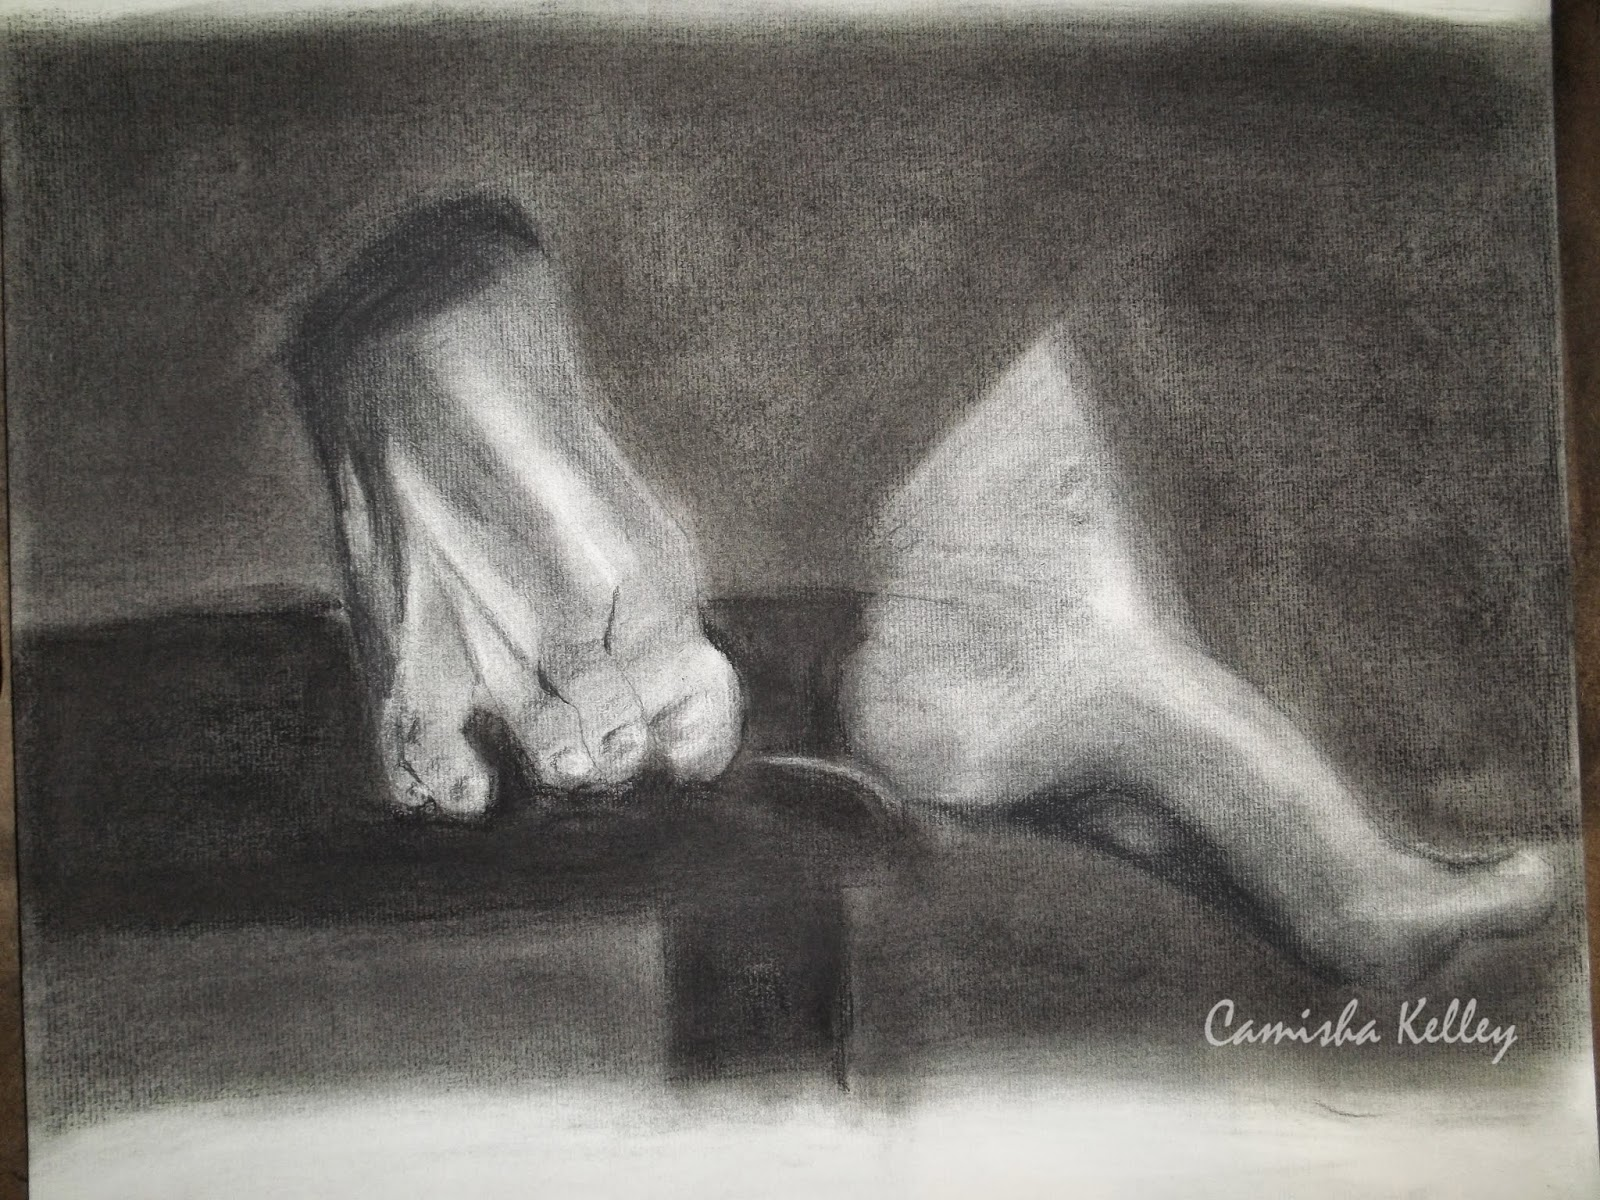 """Feet Study"" Started rendering, these after I did the hand and apple picture. There is still work to be done."